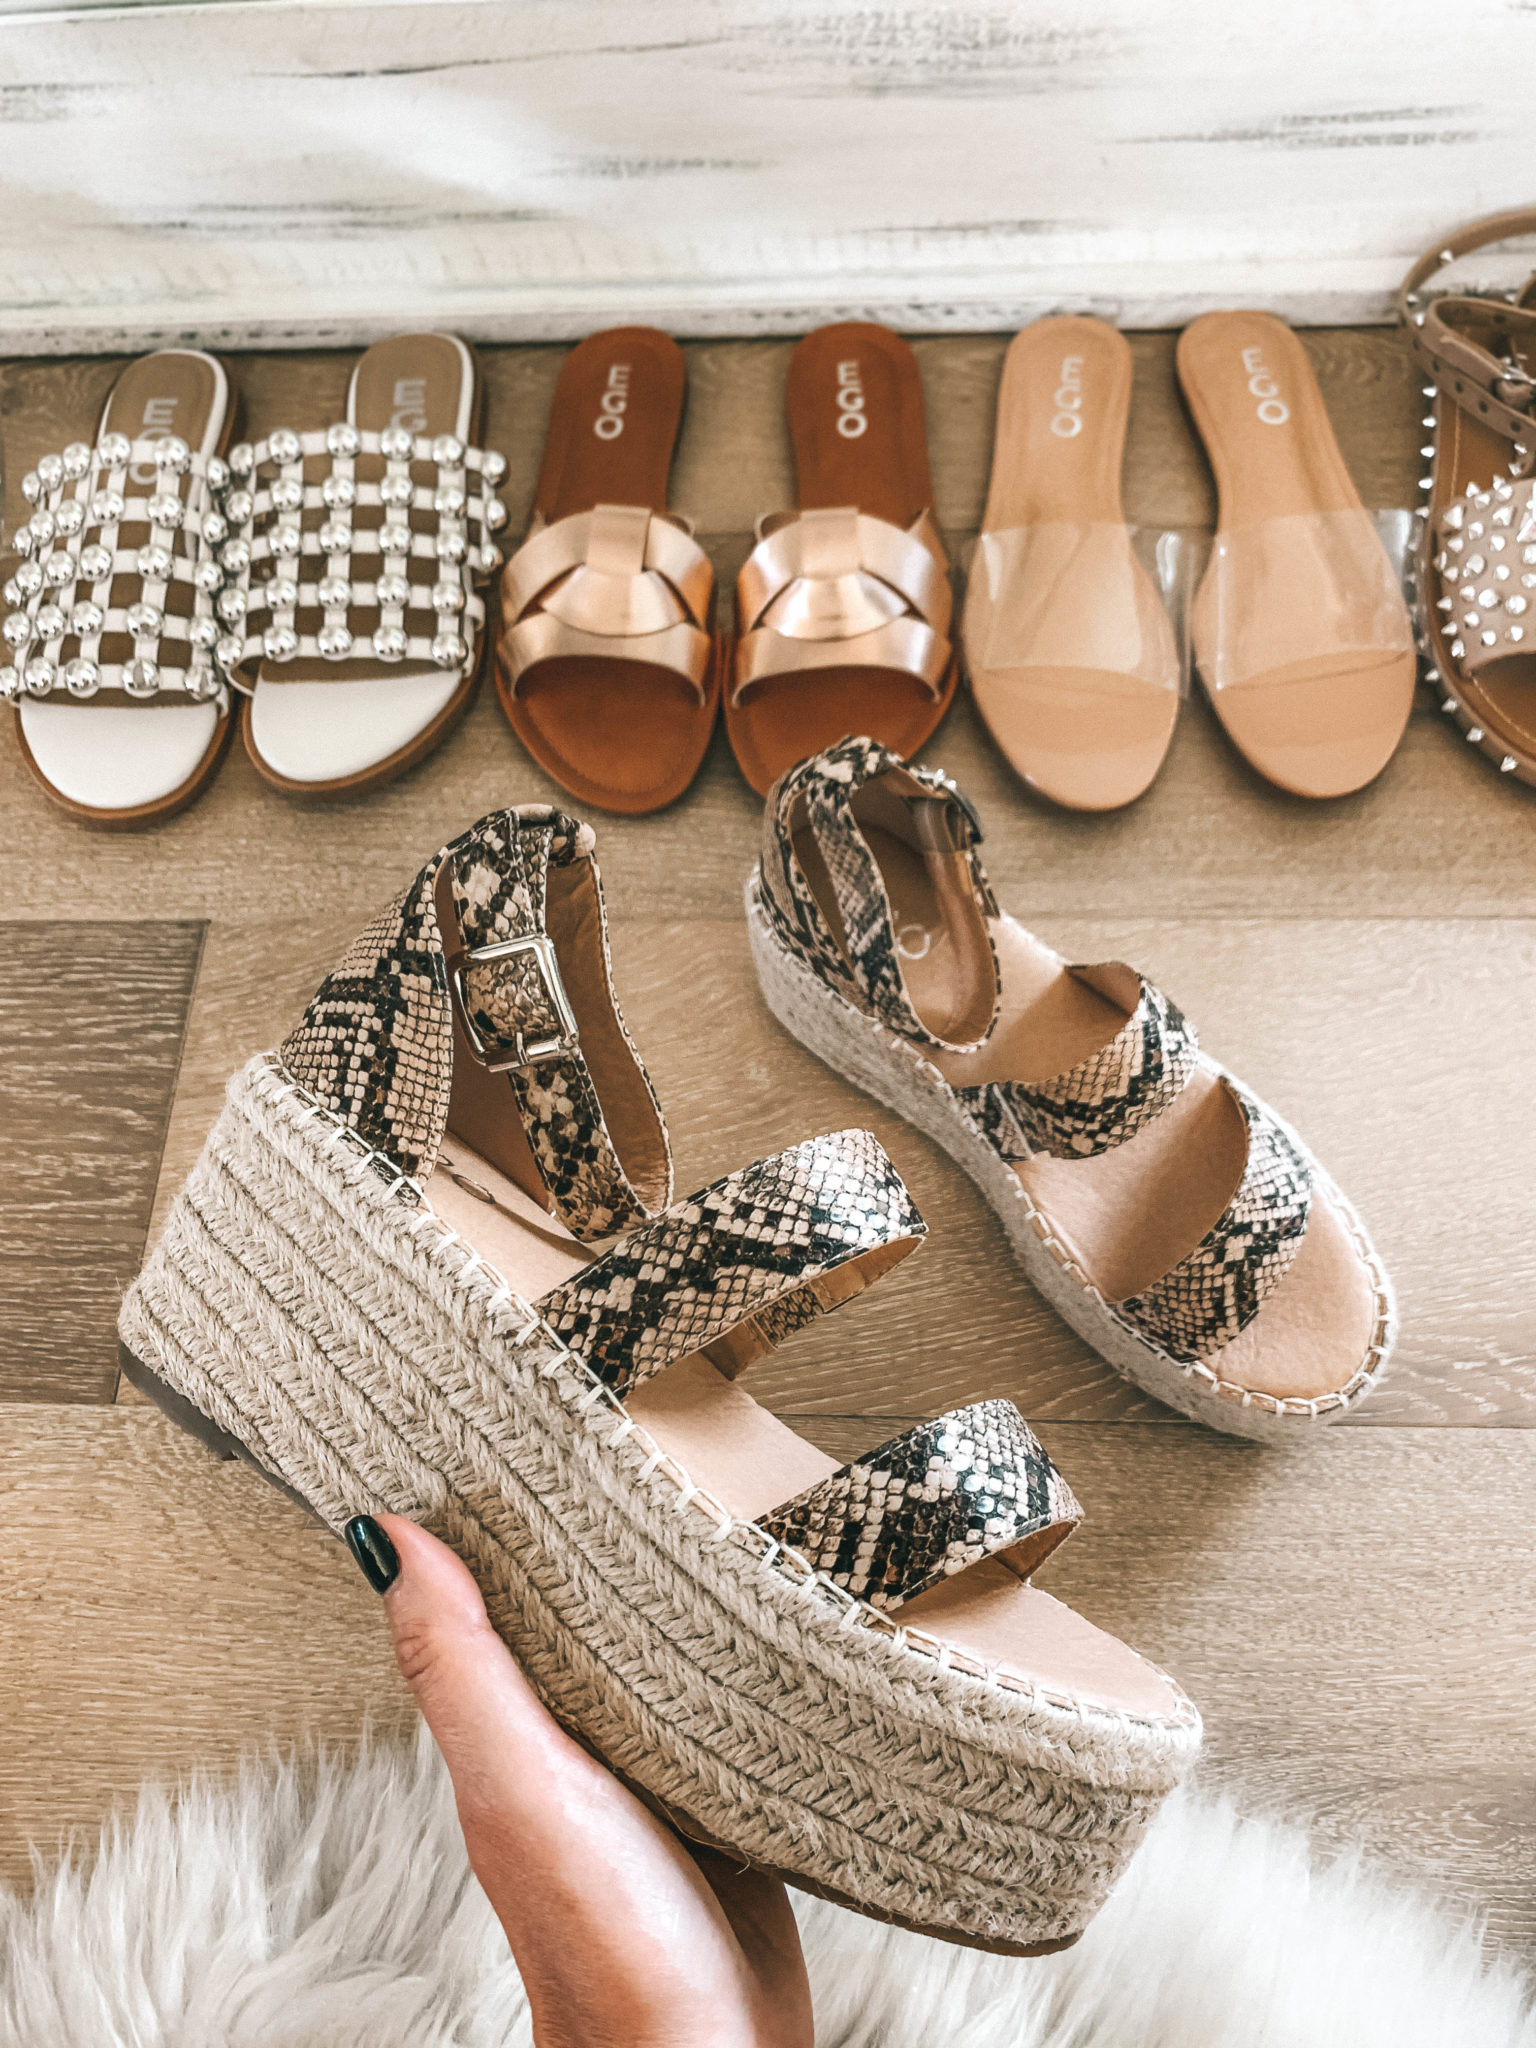 5 Must Have Affordable EGO Sandals for Summer by popular Austin fashion blog, Dressed to Kill: image of woman holding EGO sandals Hazy Espadrille Flatform In Nude Snake Print Faux Leather.